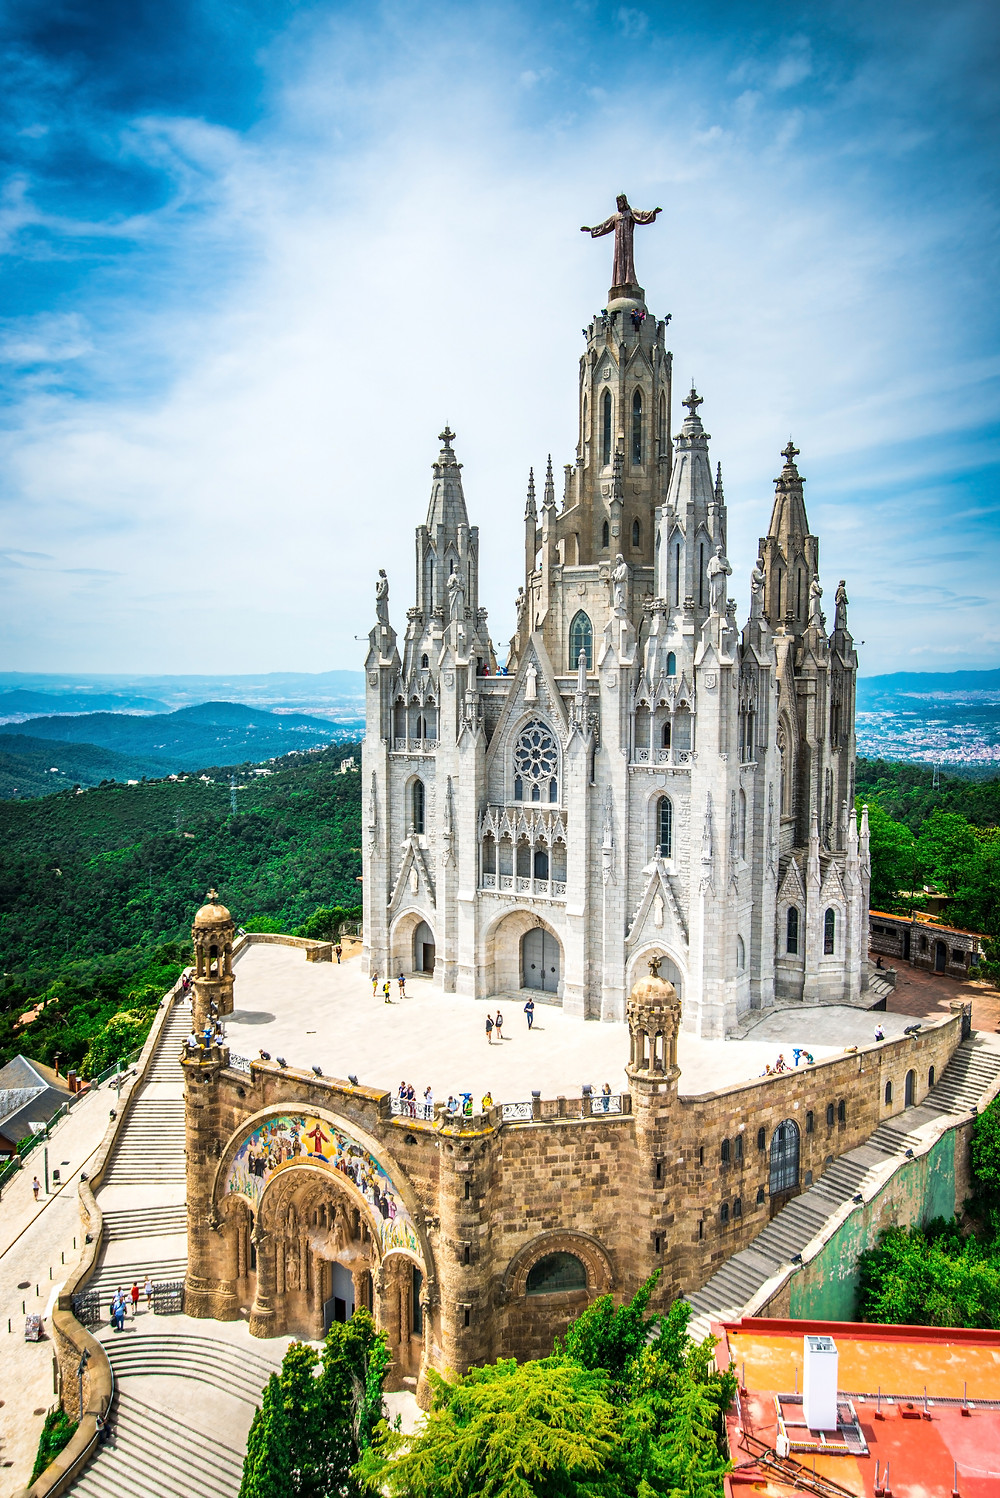 Temple of the Sacred Heart of Jesus on Tibidabo